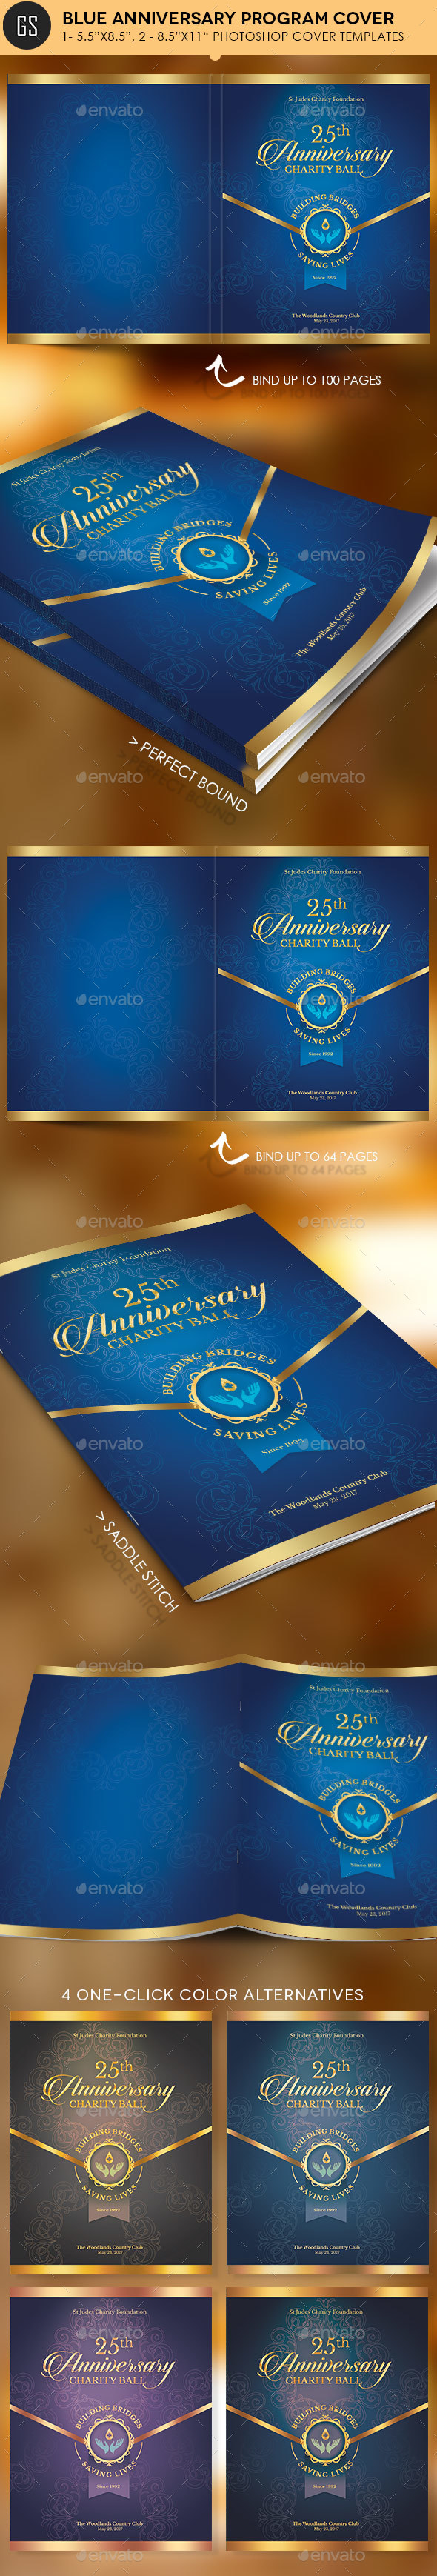 Blue Anniversary Gala Program Cover Template - Magazines Print Templates